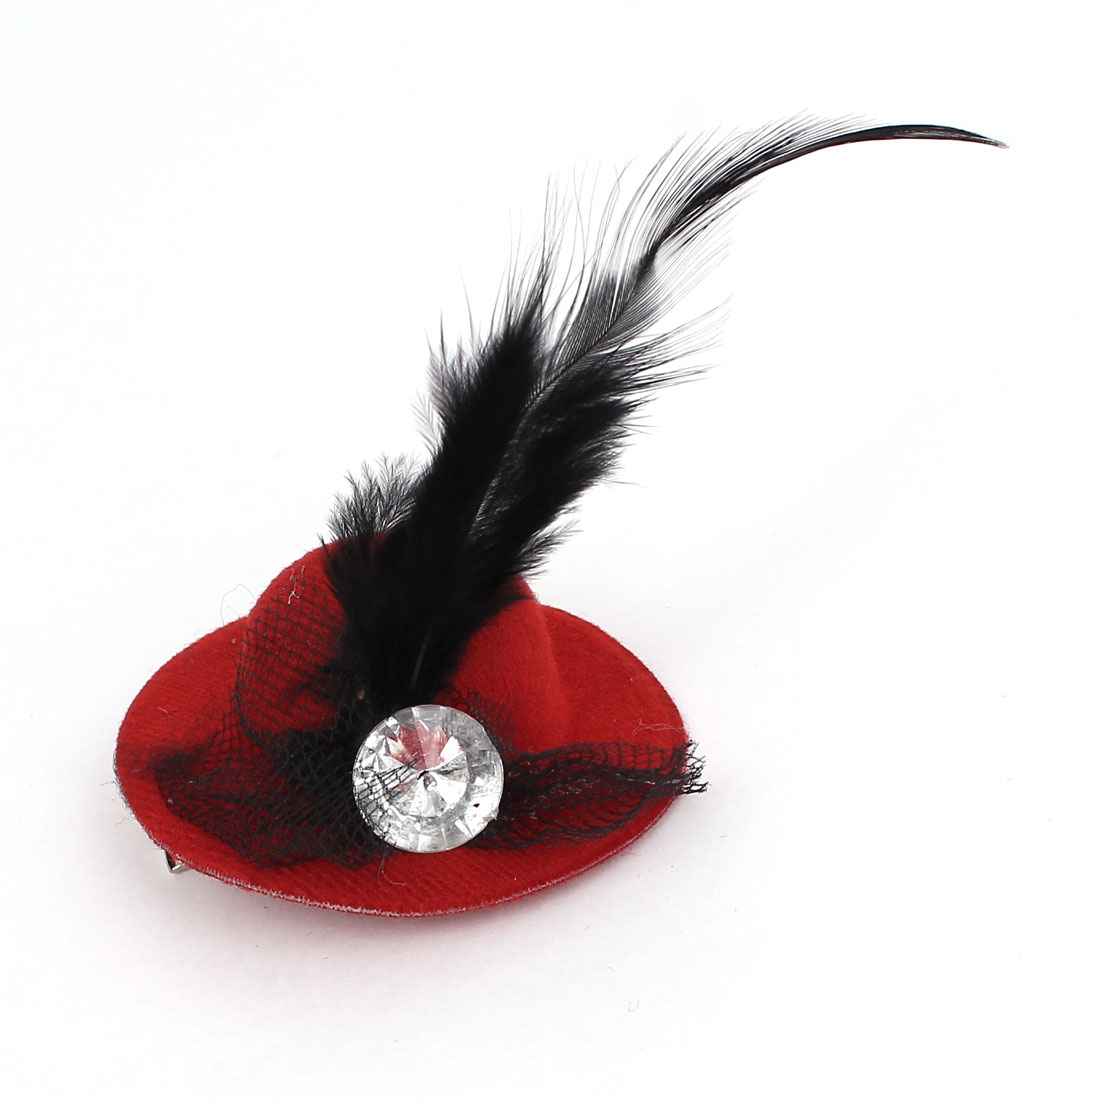 Lady Rhinestone Inlaid Feather Mesh Ornament Mini Top Cap Alligator Clip Hairclip Red